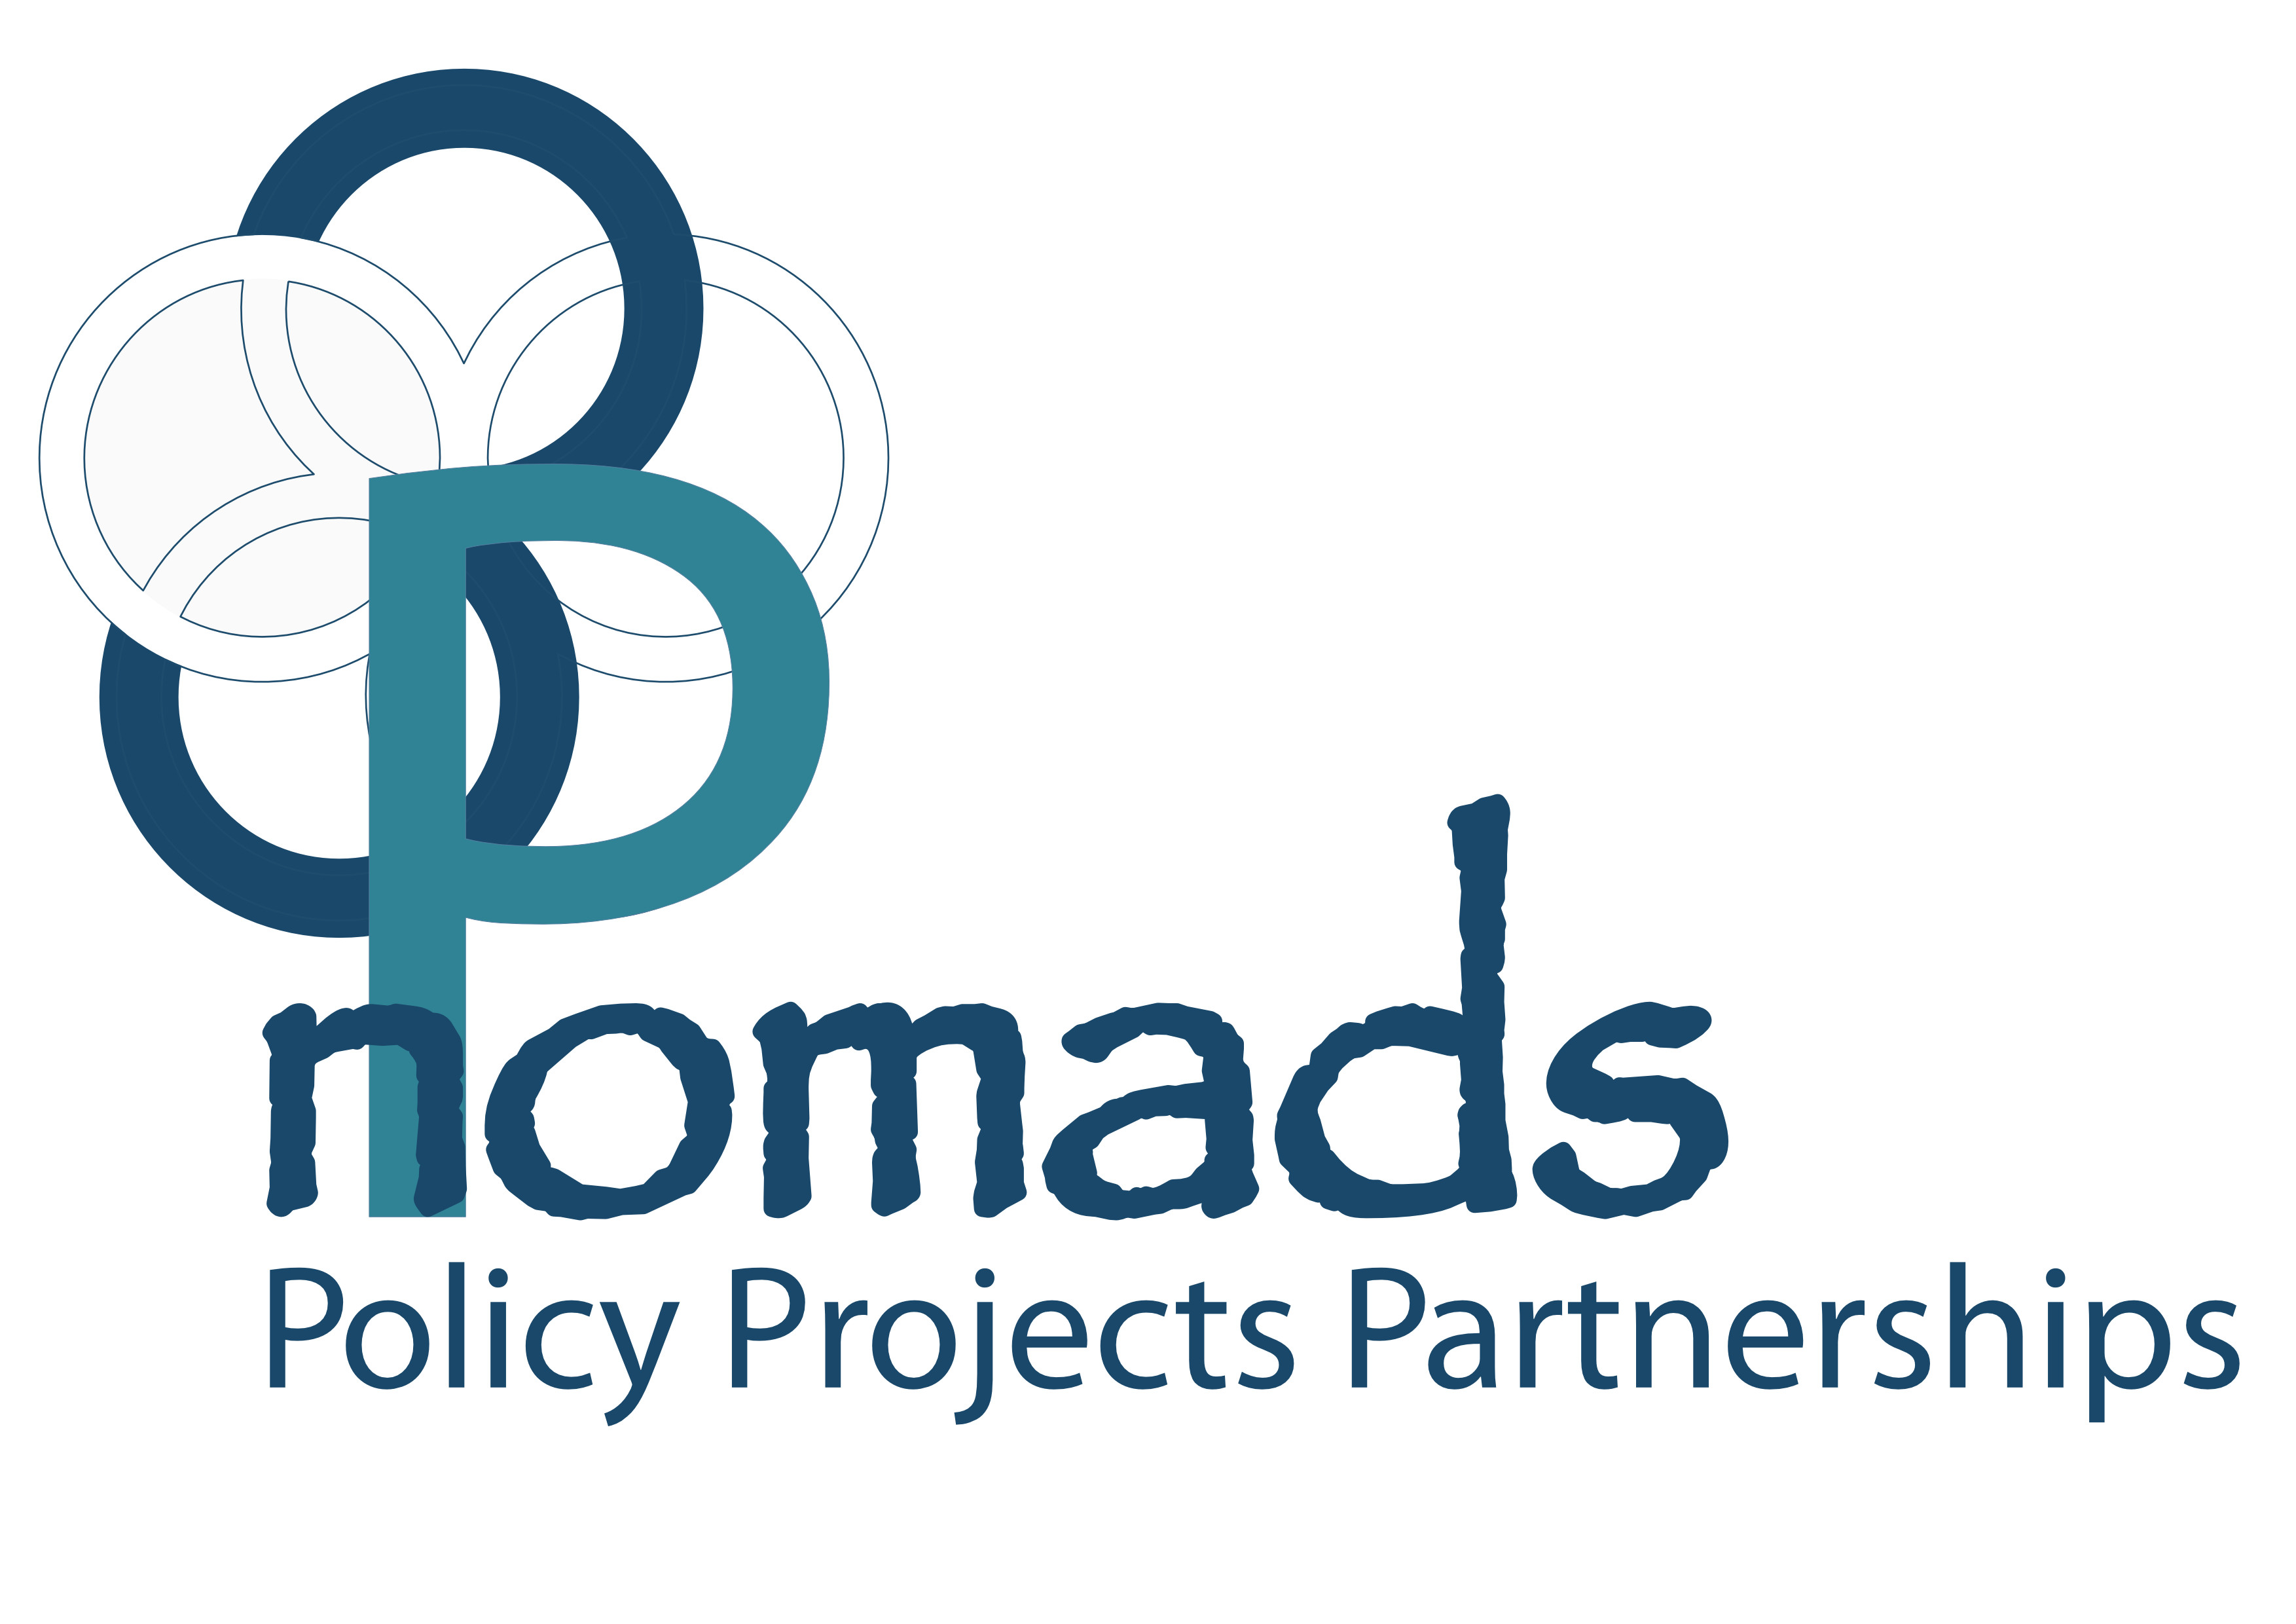 Logo of P3Nomads